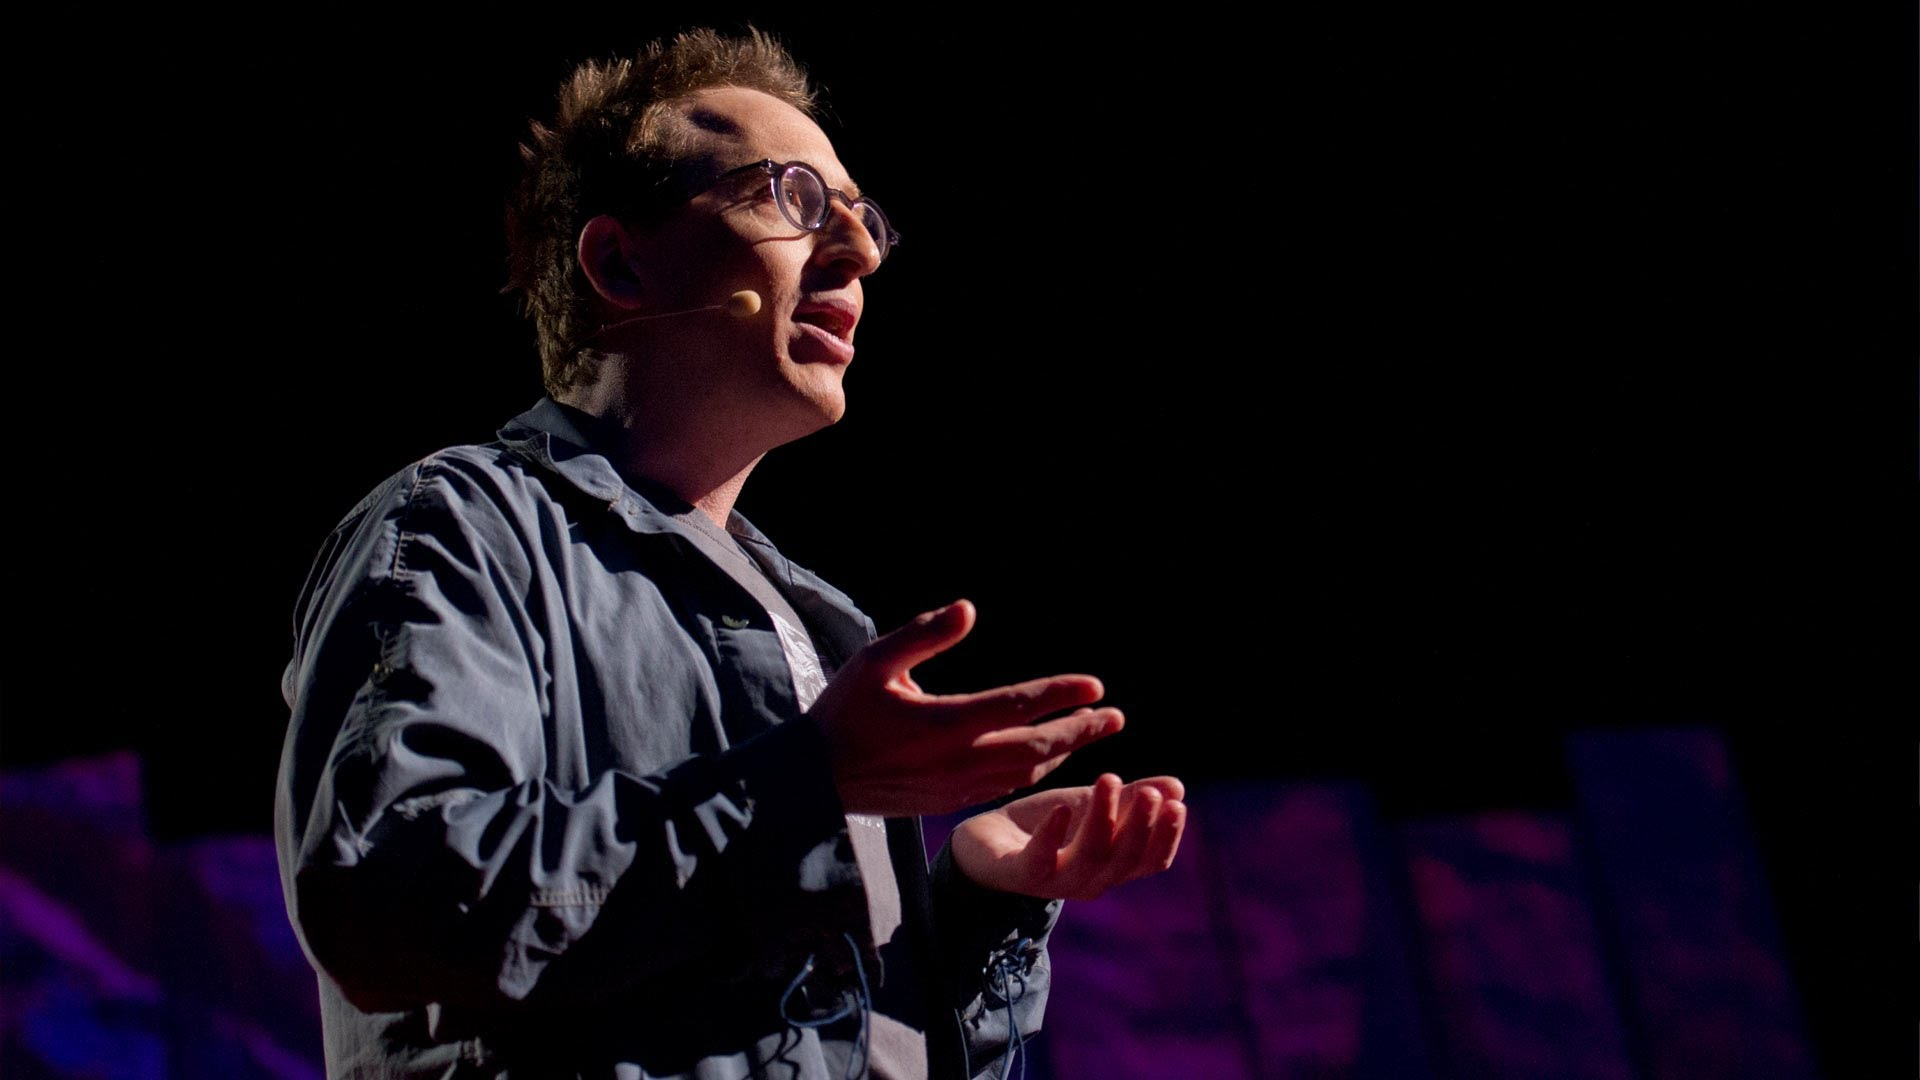 「Jon Ronson:精神病測試的另類解答」- Strange Answers to the Psychopath Test